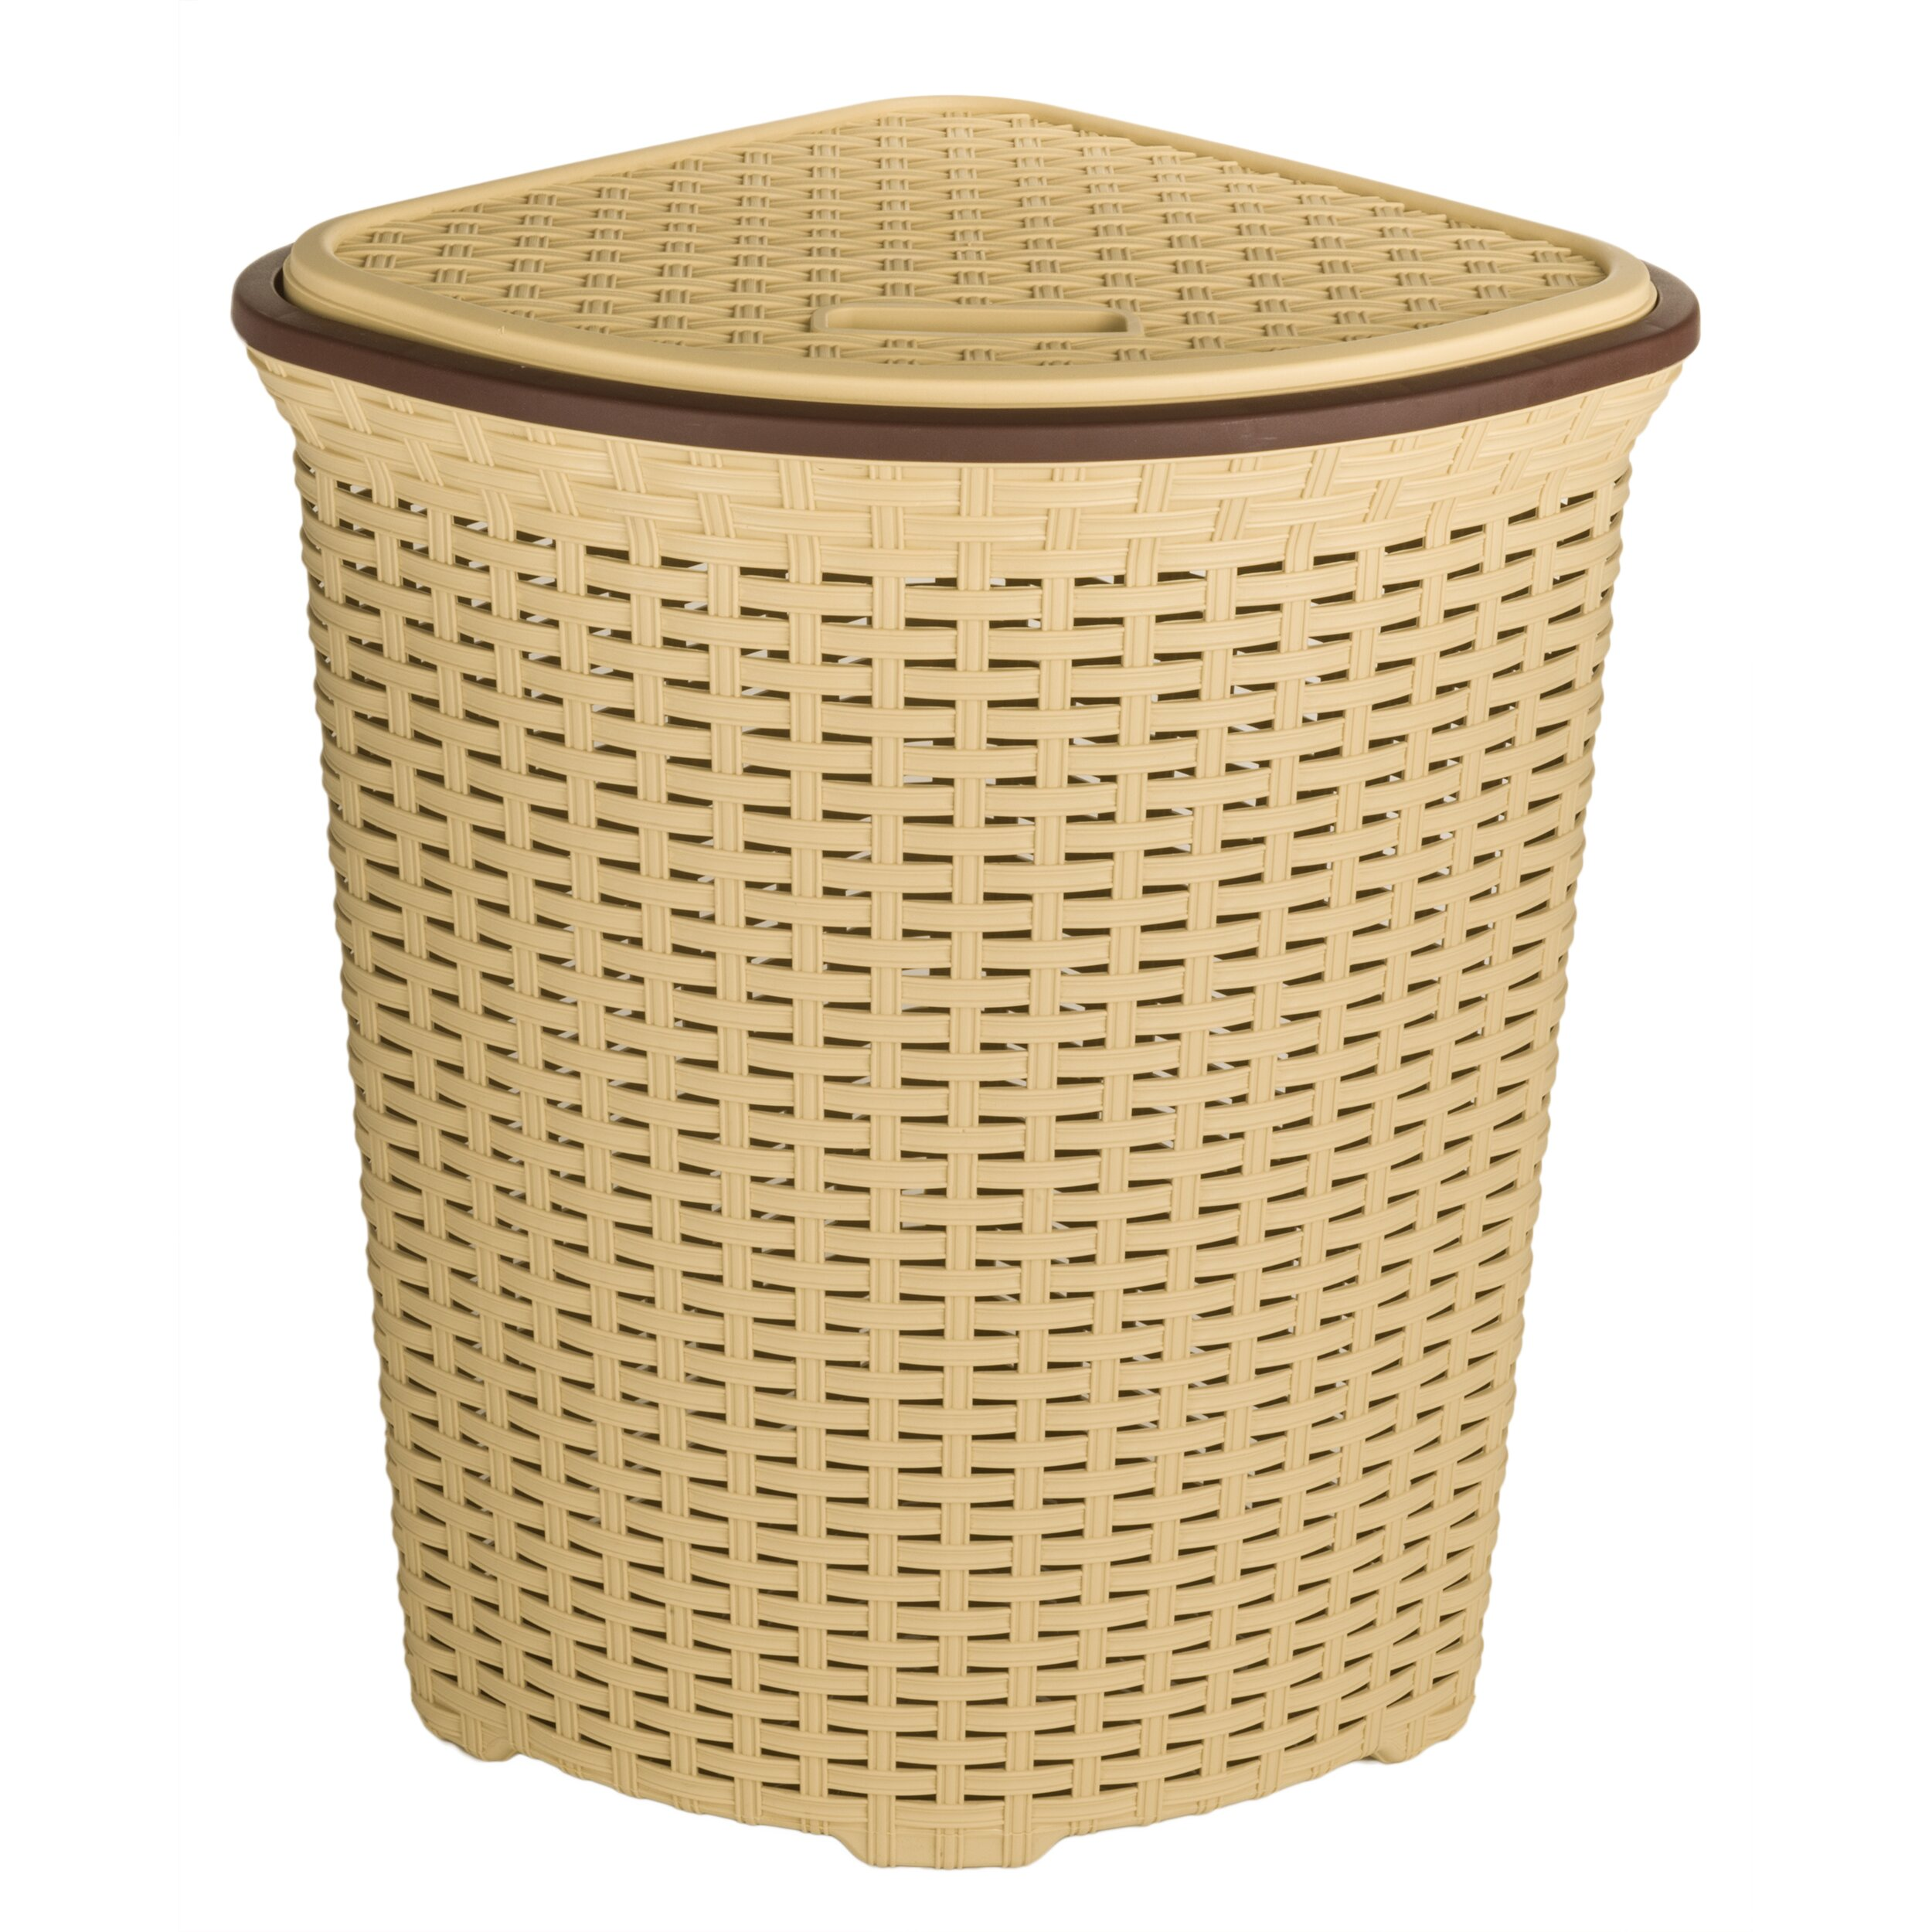 Superior performance superio brand wicker style corner laundry hamper reviews wayfair - Rattan clothes hamper ...